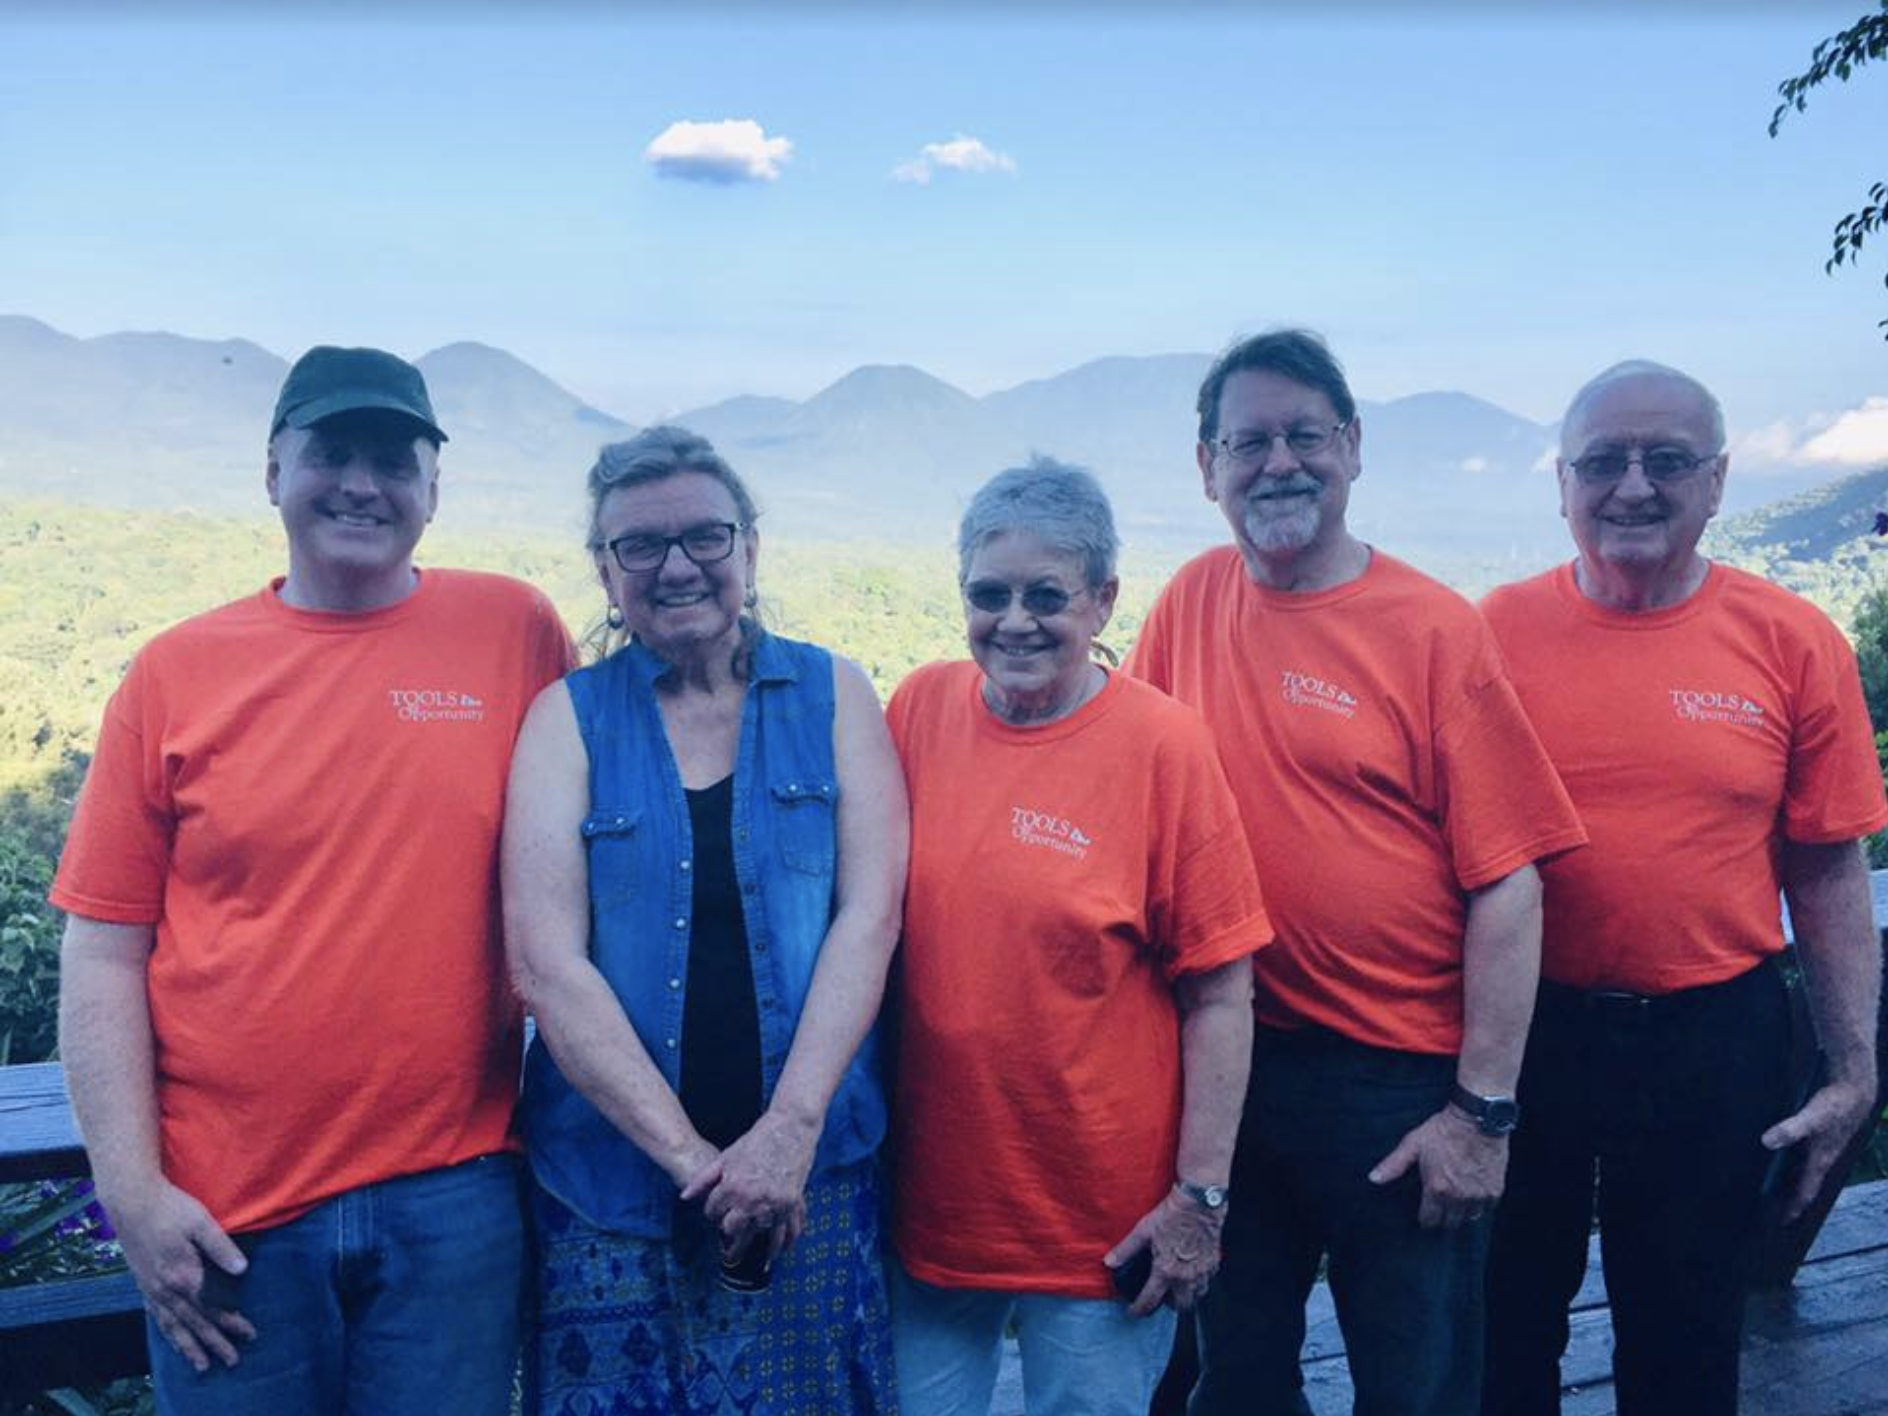 Tools for Opportunity supporters Nathan Kress, Carol Pearson, Eileen Peterson, TFO President Gene Pedersen, and supporter Dennis LaRoque taking in the sights of El Salvador on their trip in 2018.